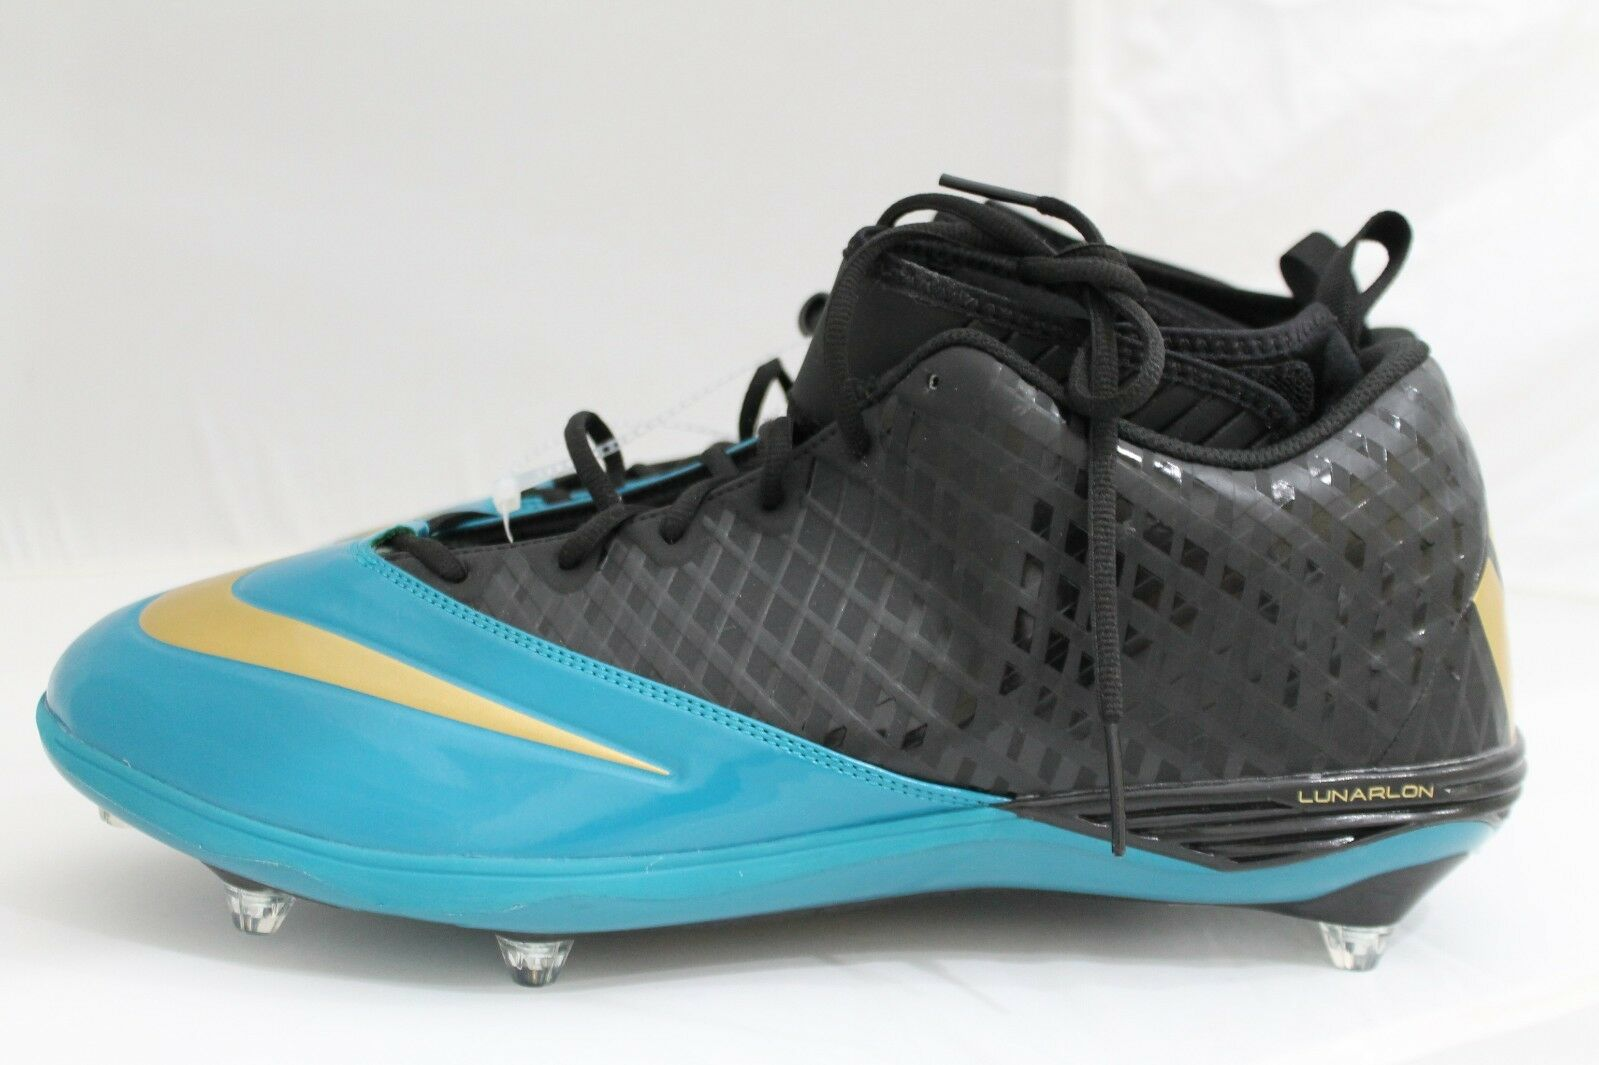 NEW Nike Superbad Pro Lunarlon--size 17, teal and black--544762-015